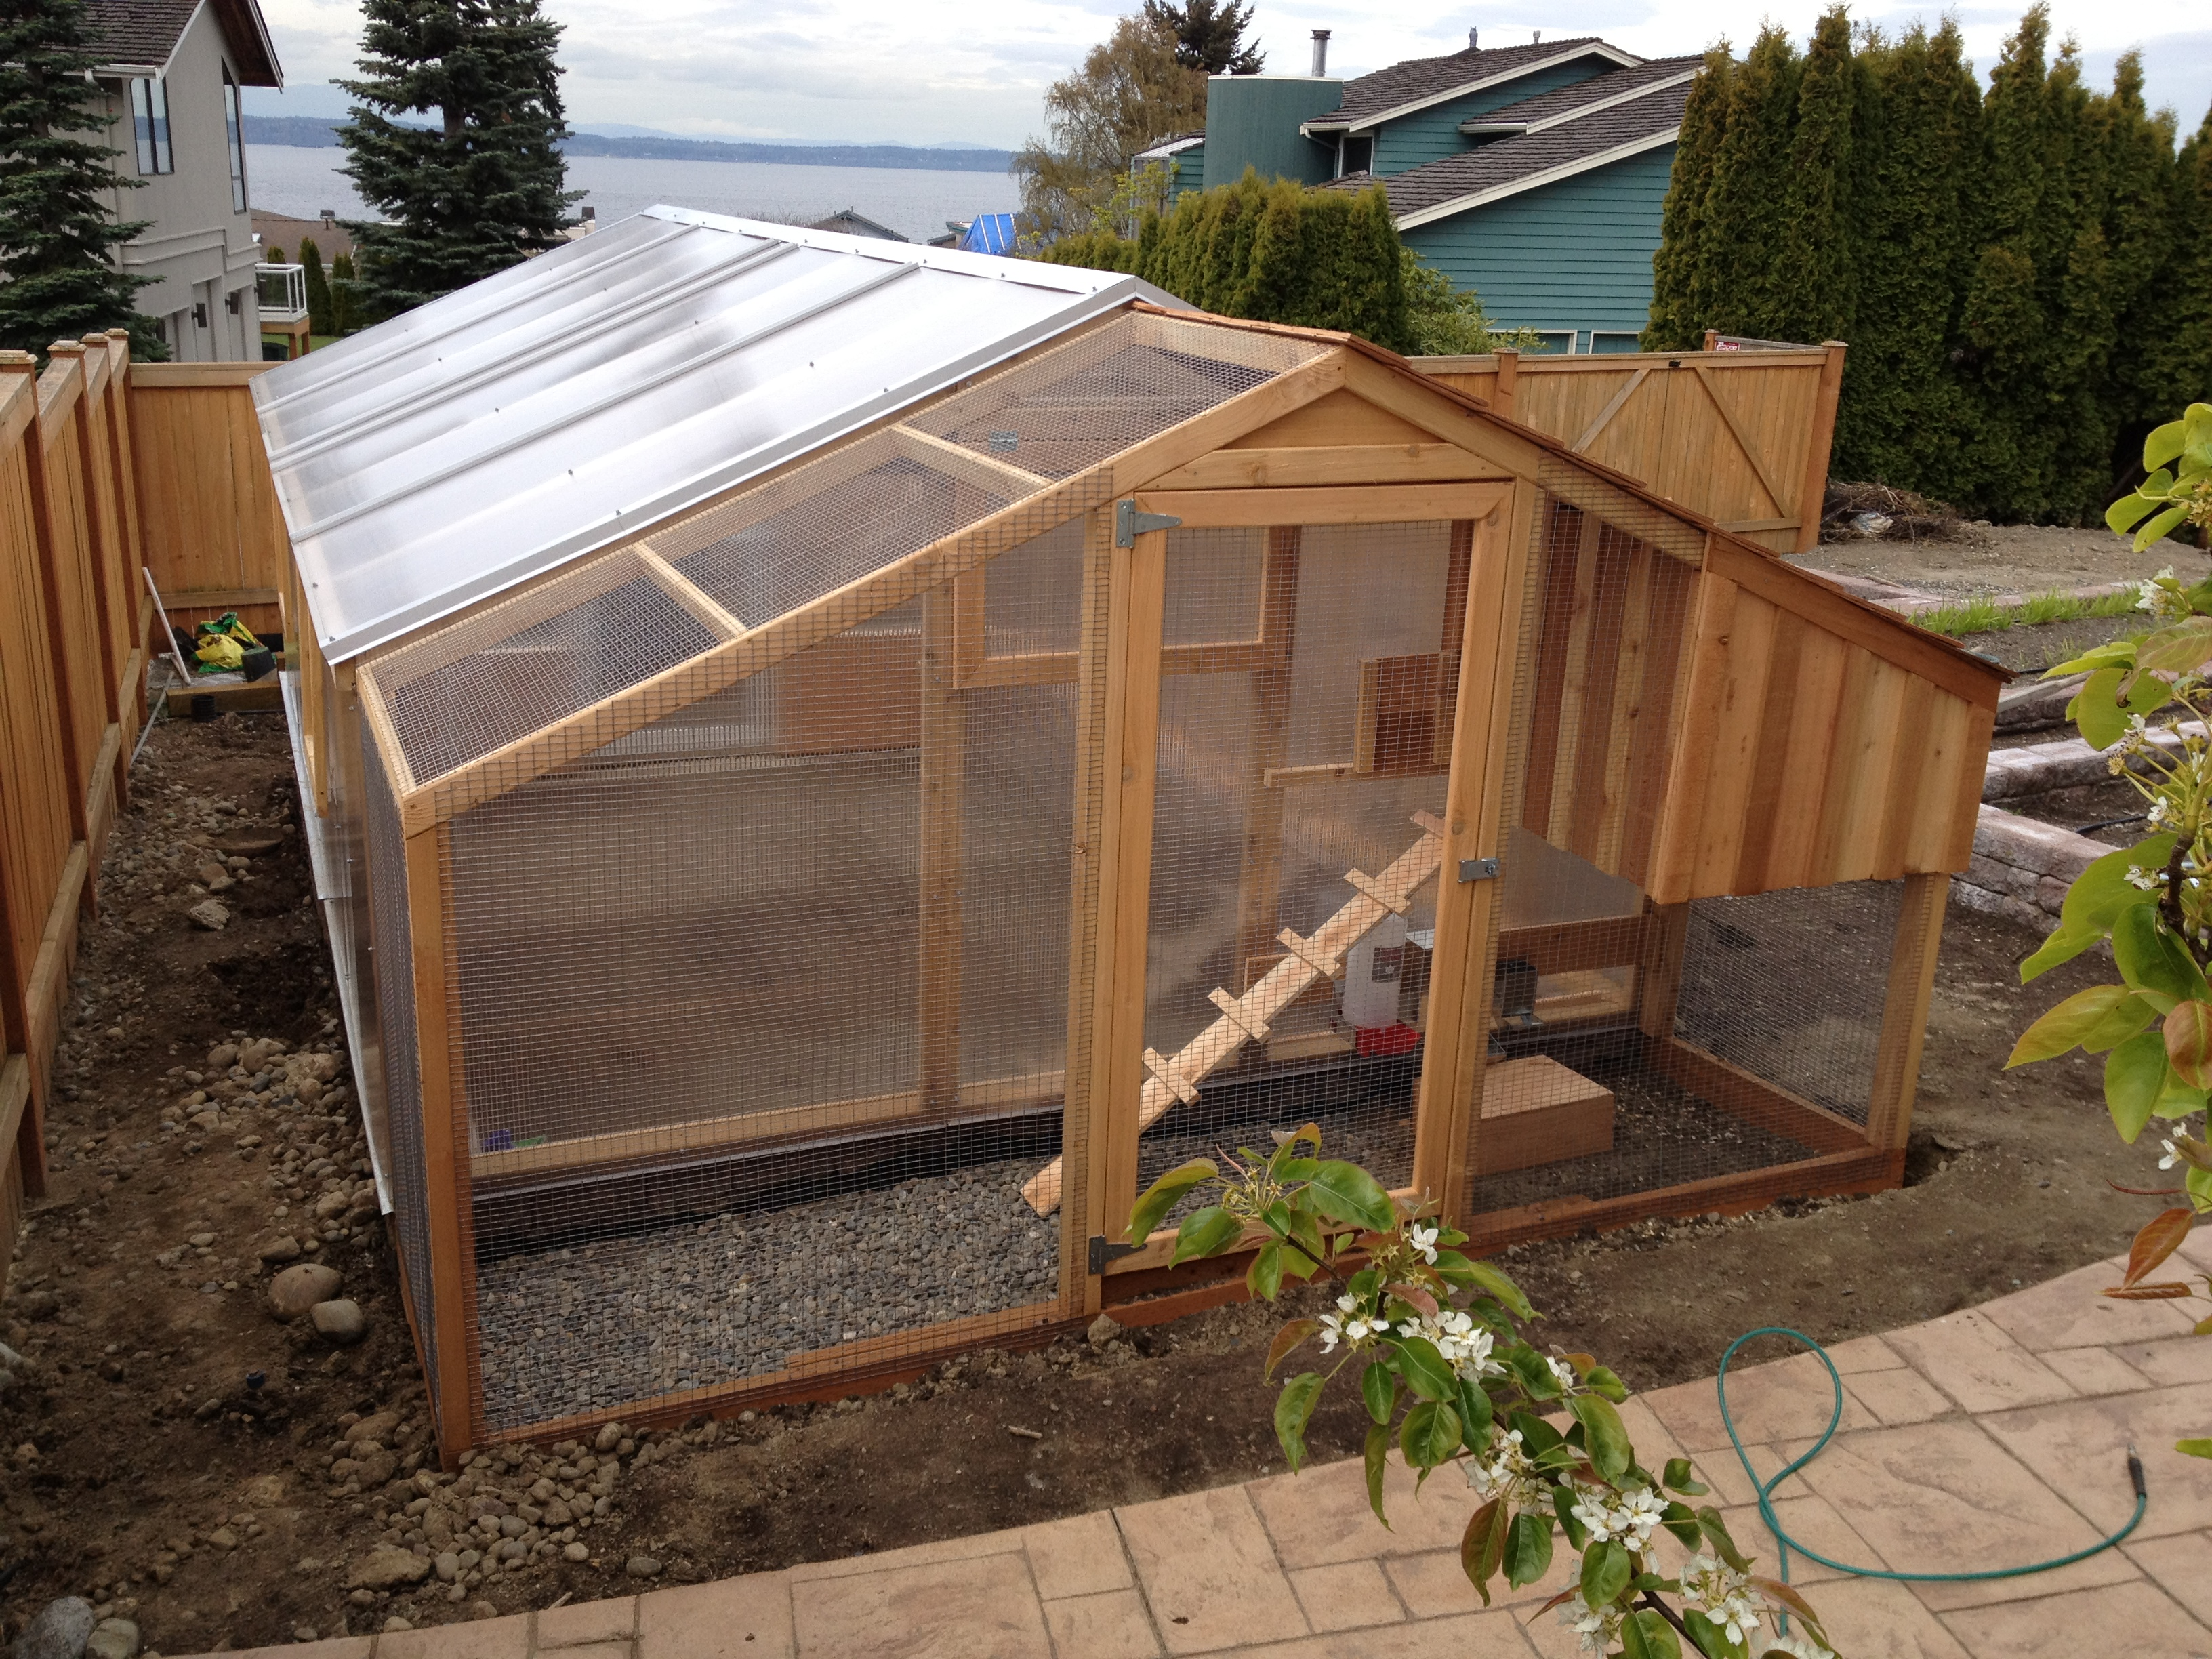 Timber Frame Greenhouse Shed Plans Flat Roof